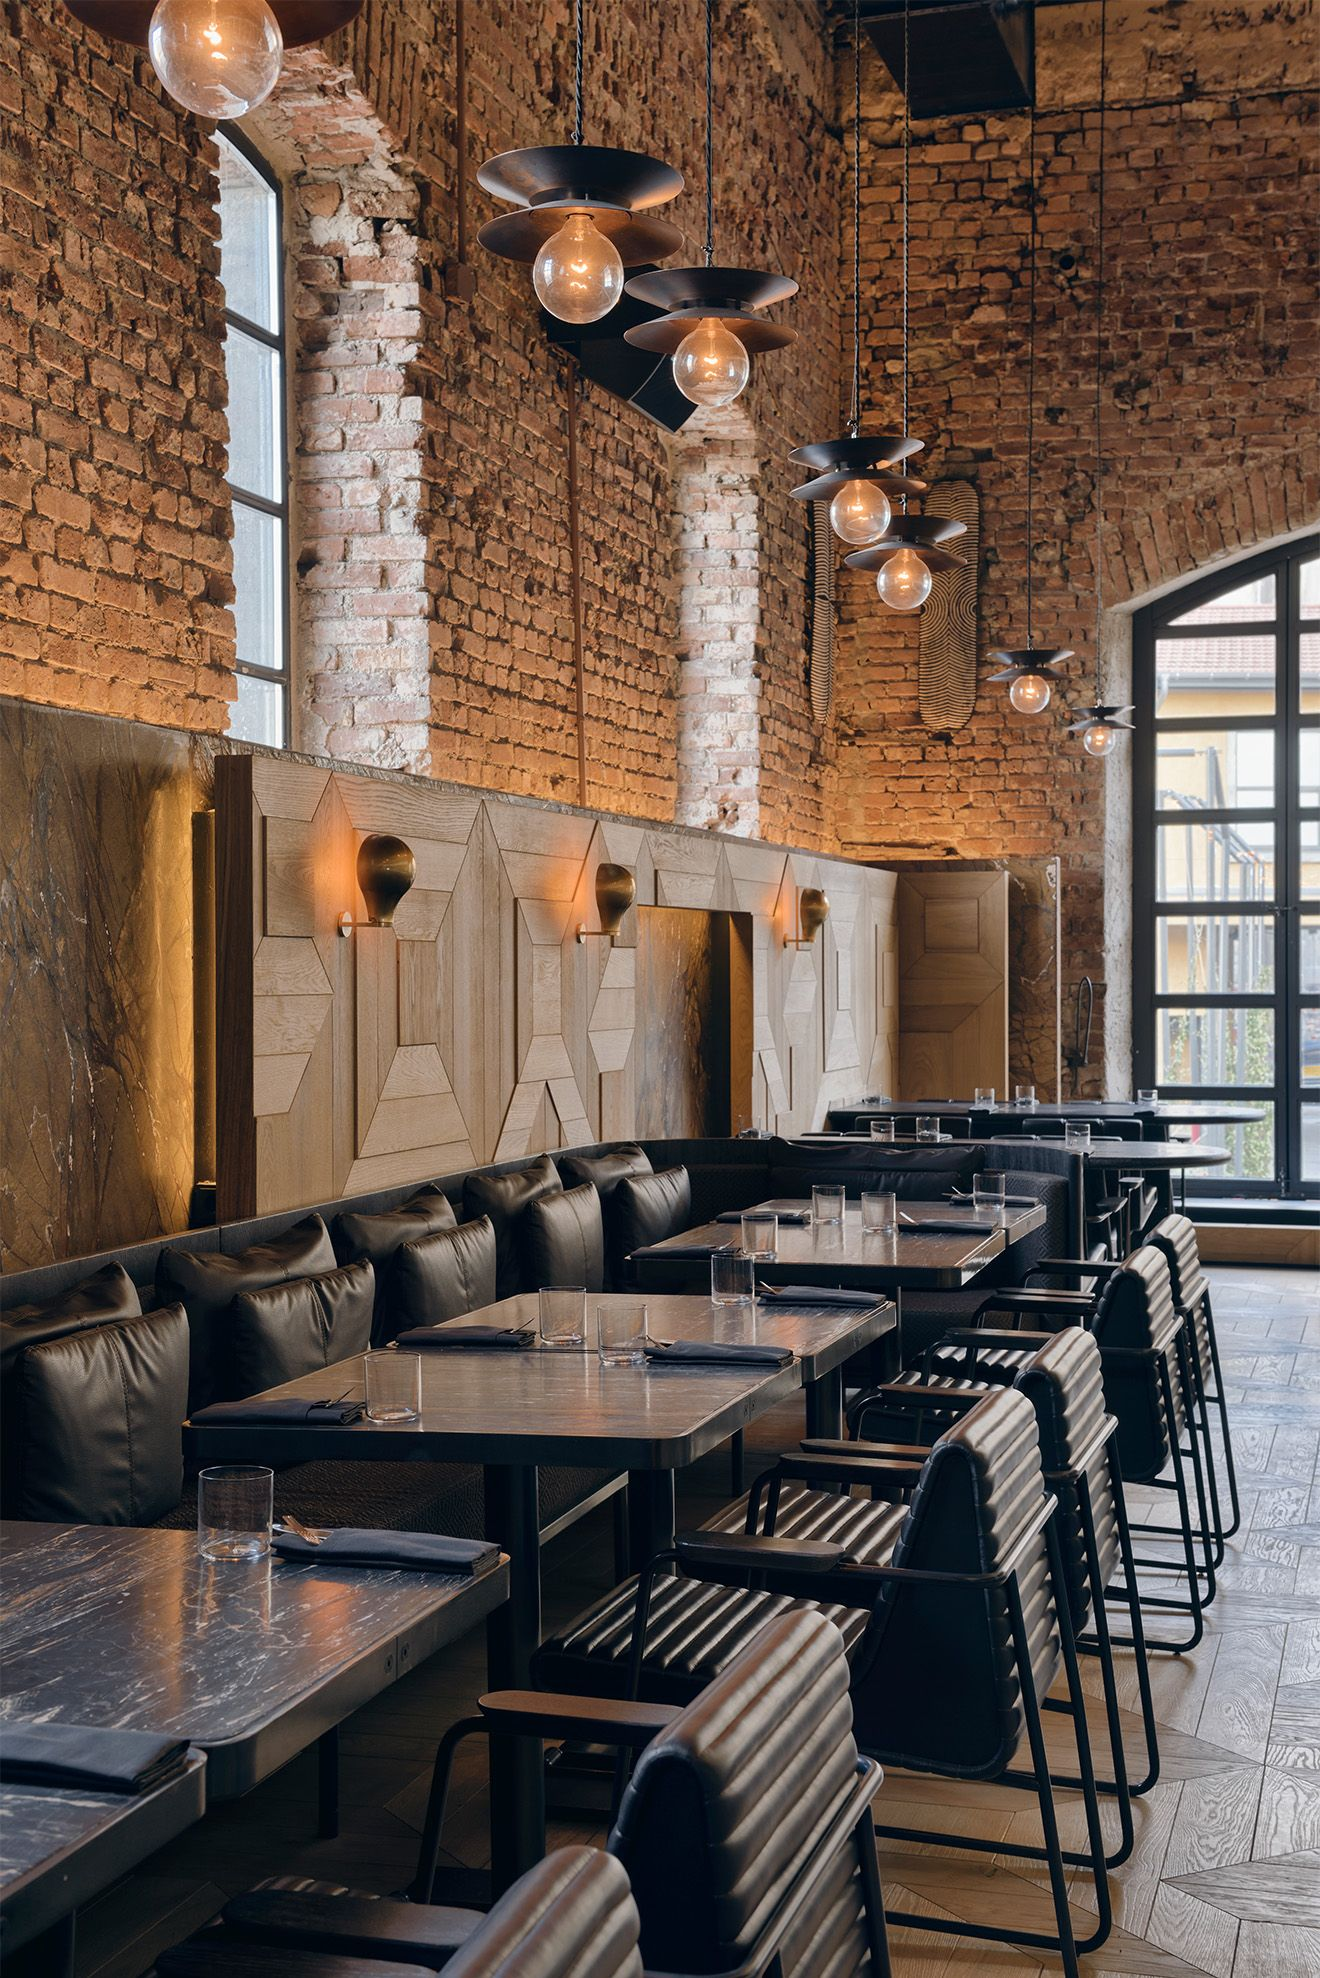 Autoban: Kilimanjaro | Restaurant interior design, Brickwork and ...